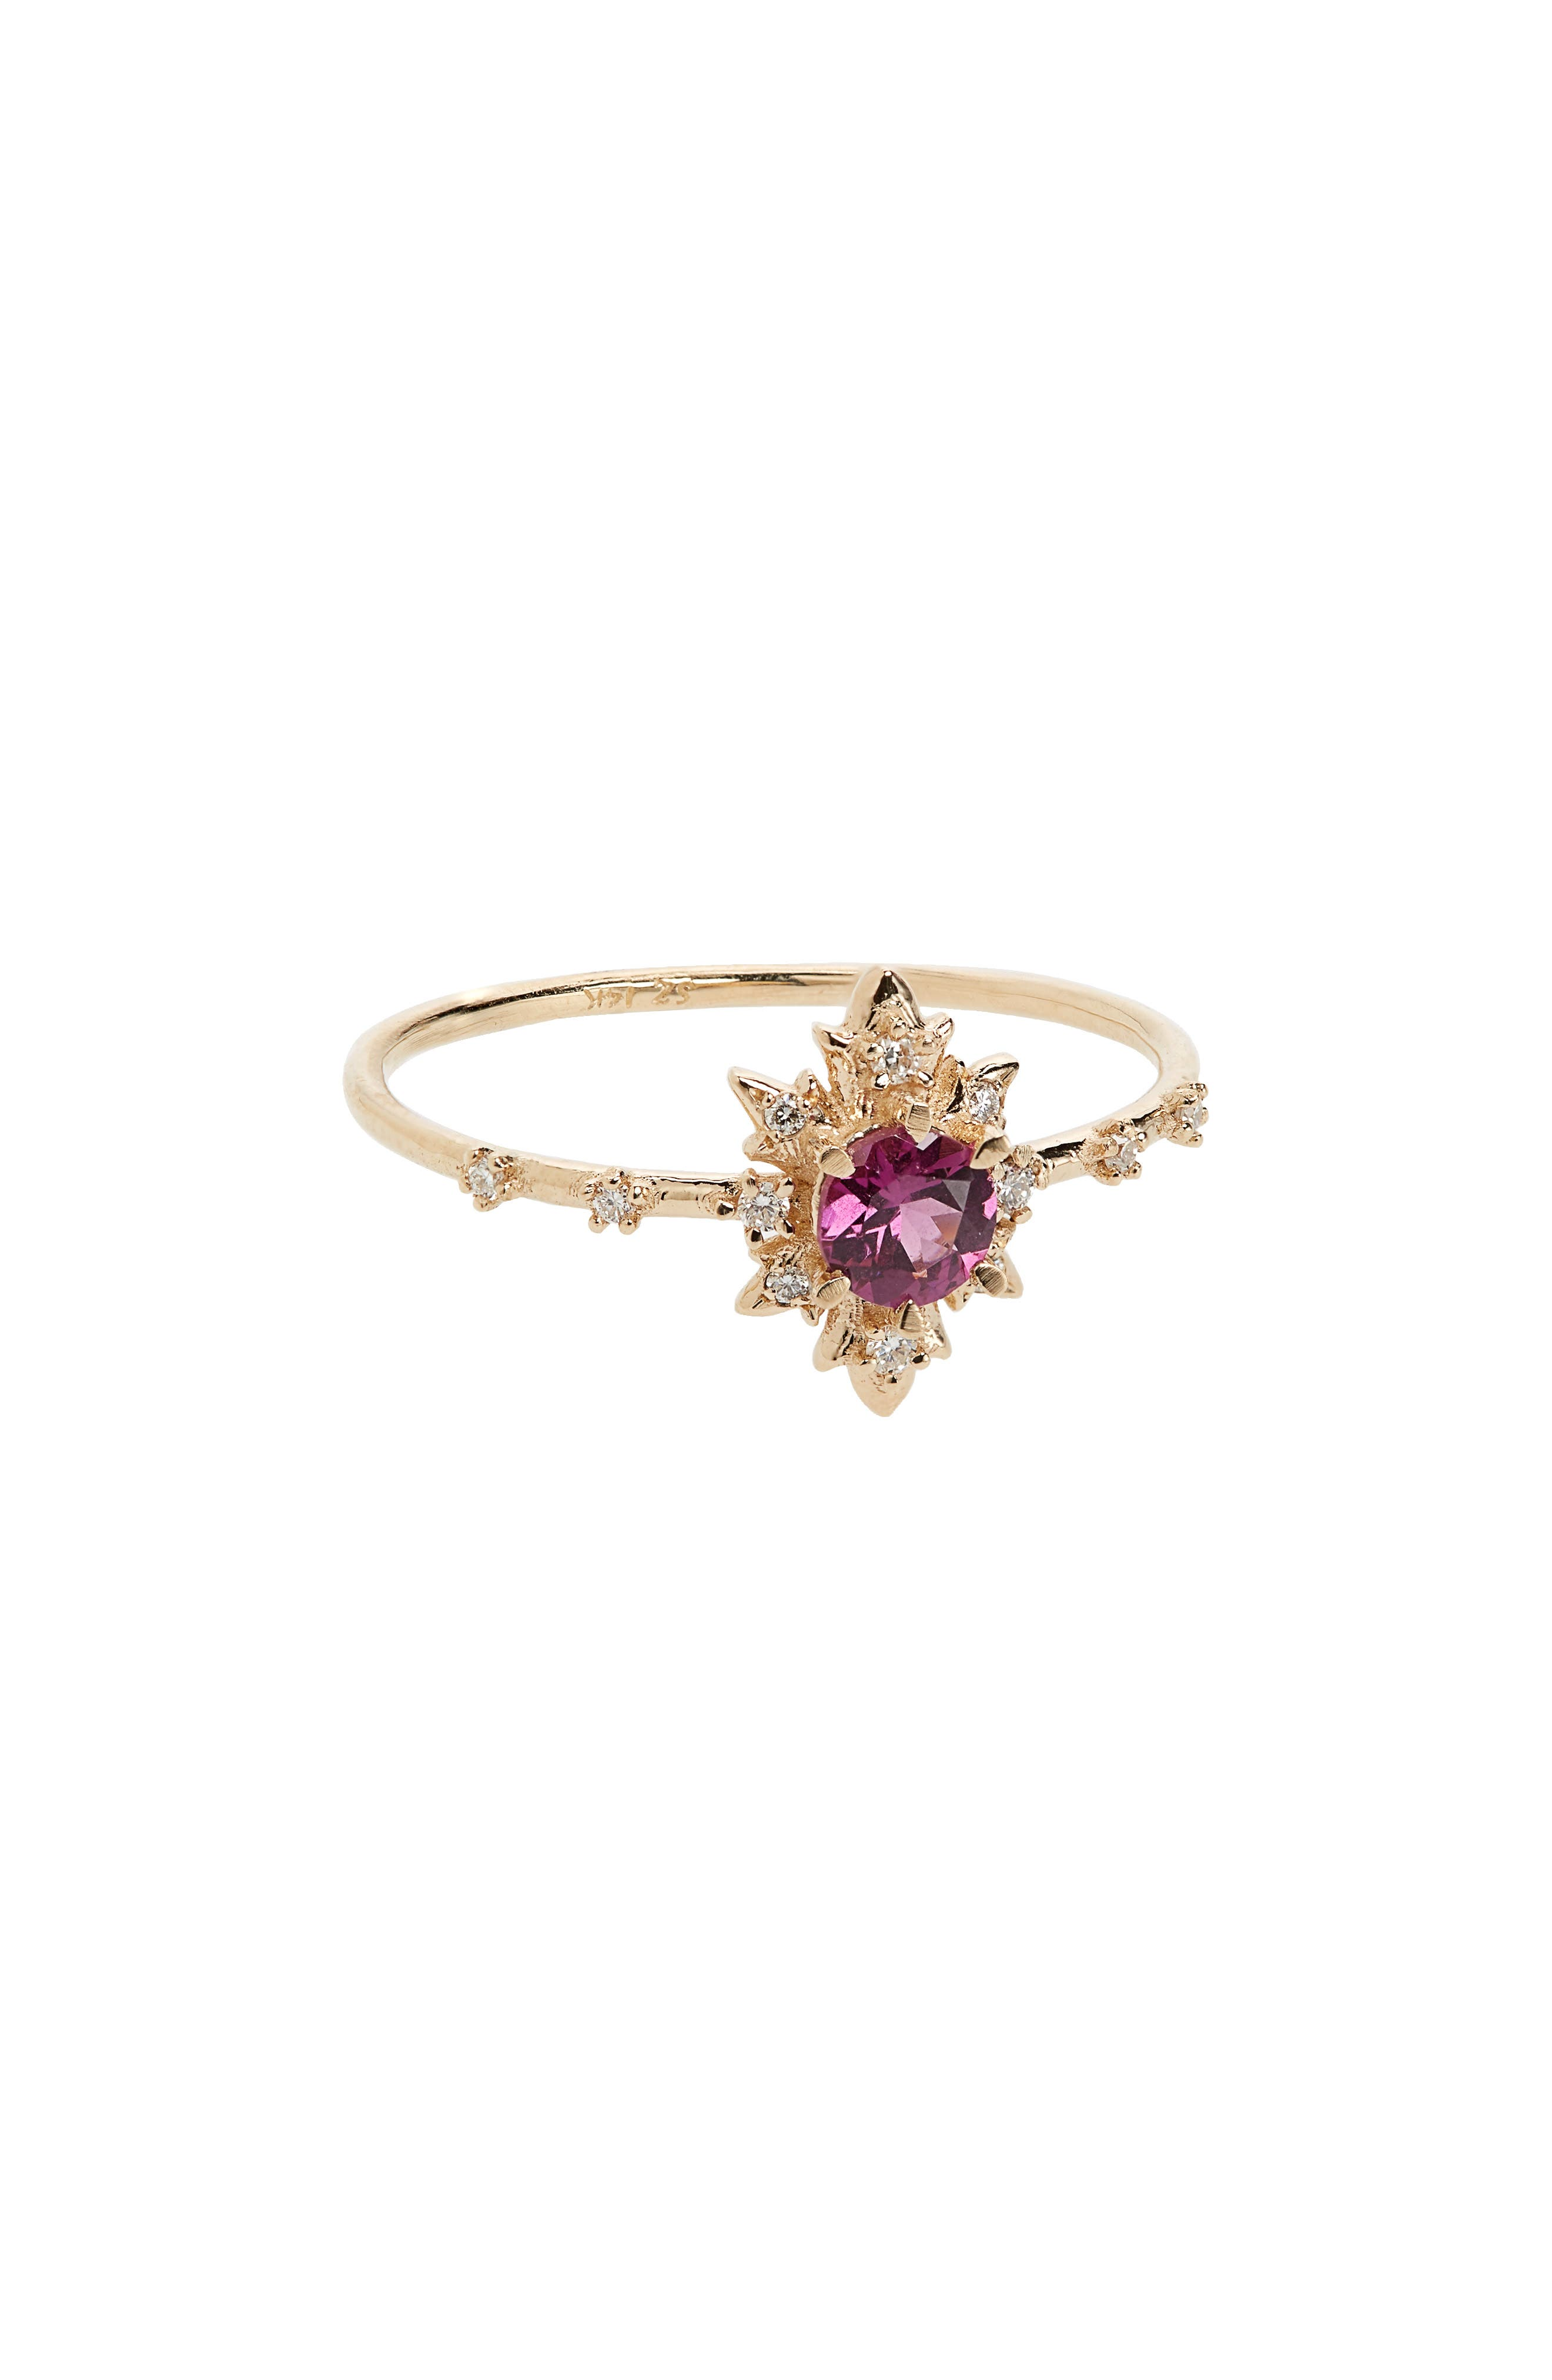 Spectral Termina Rhodolite & Diamond Ring,                             Main thumbnail 1, color,                             GOLD